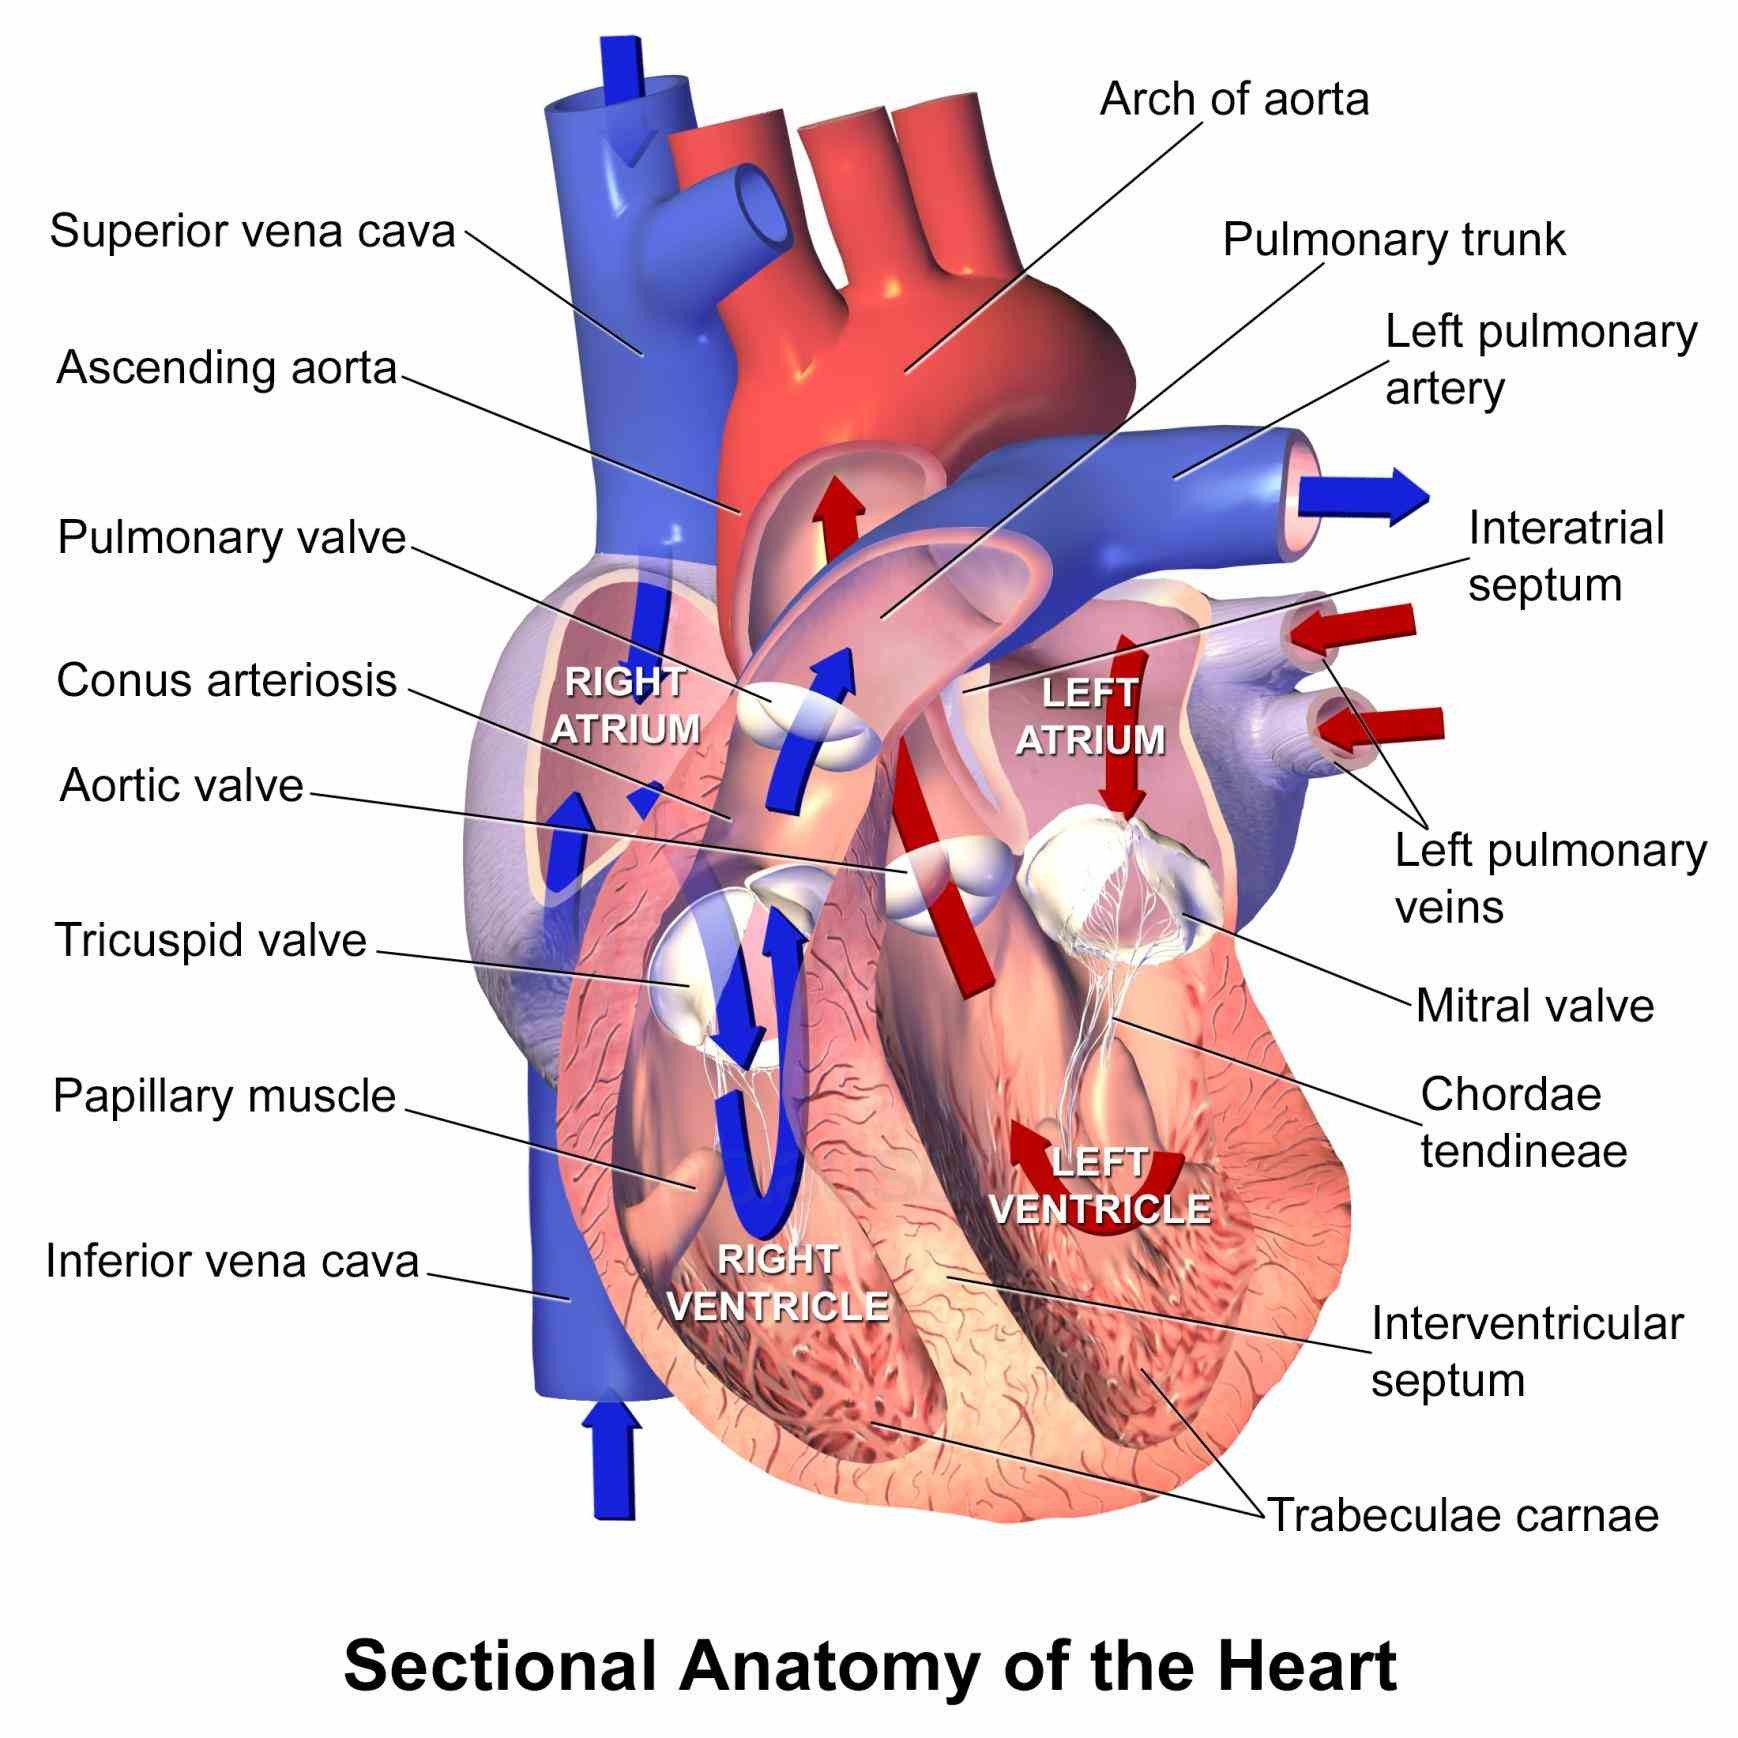 this presentation discusses the parts of human heart their functions the Parts Of The Human Heart And Their Functions